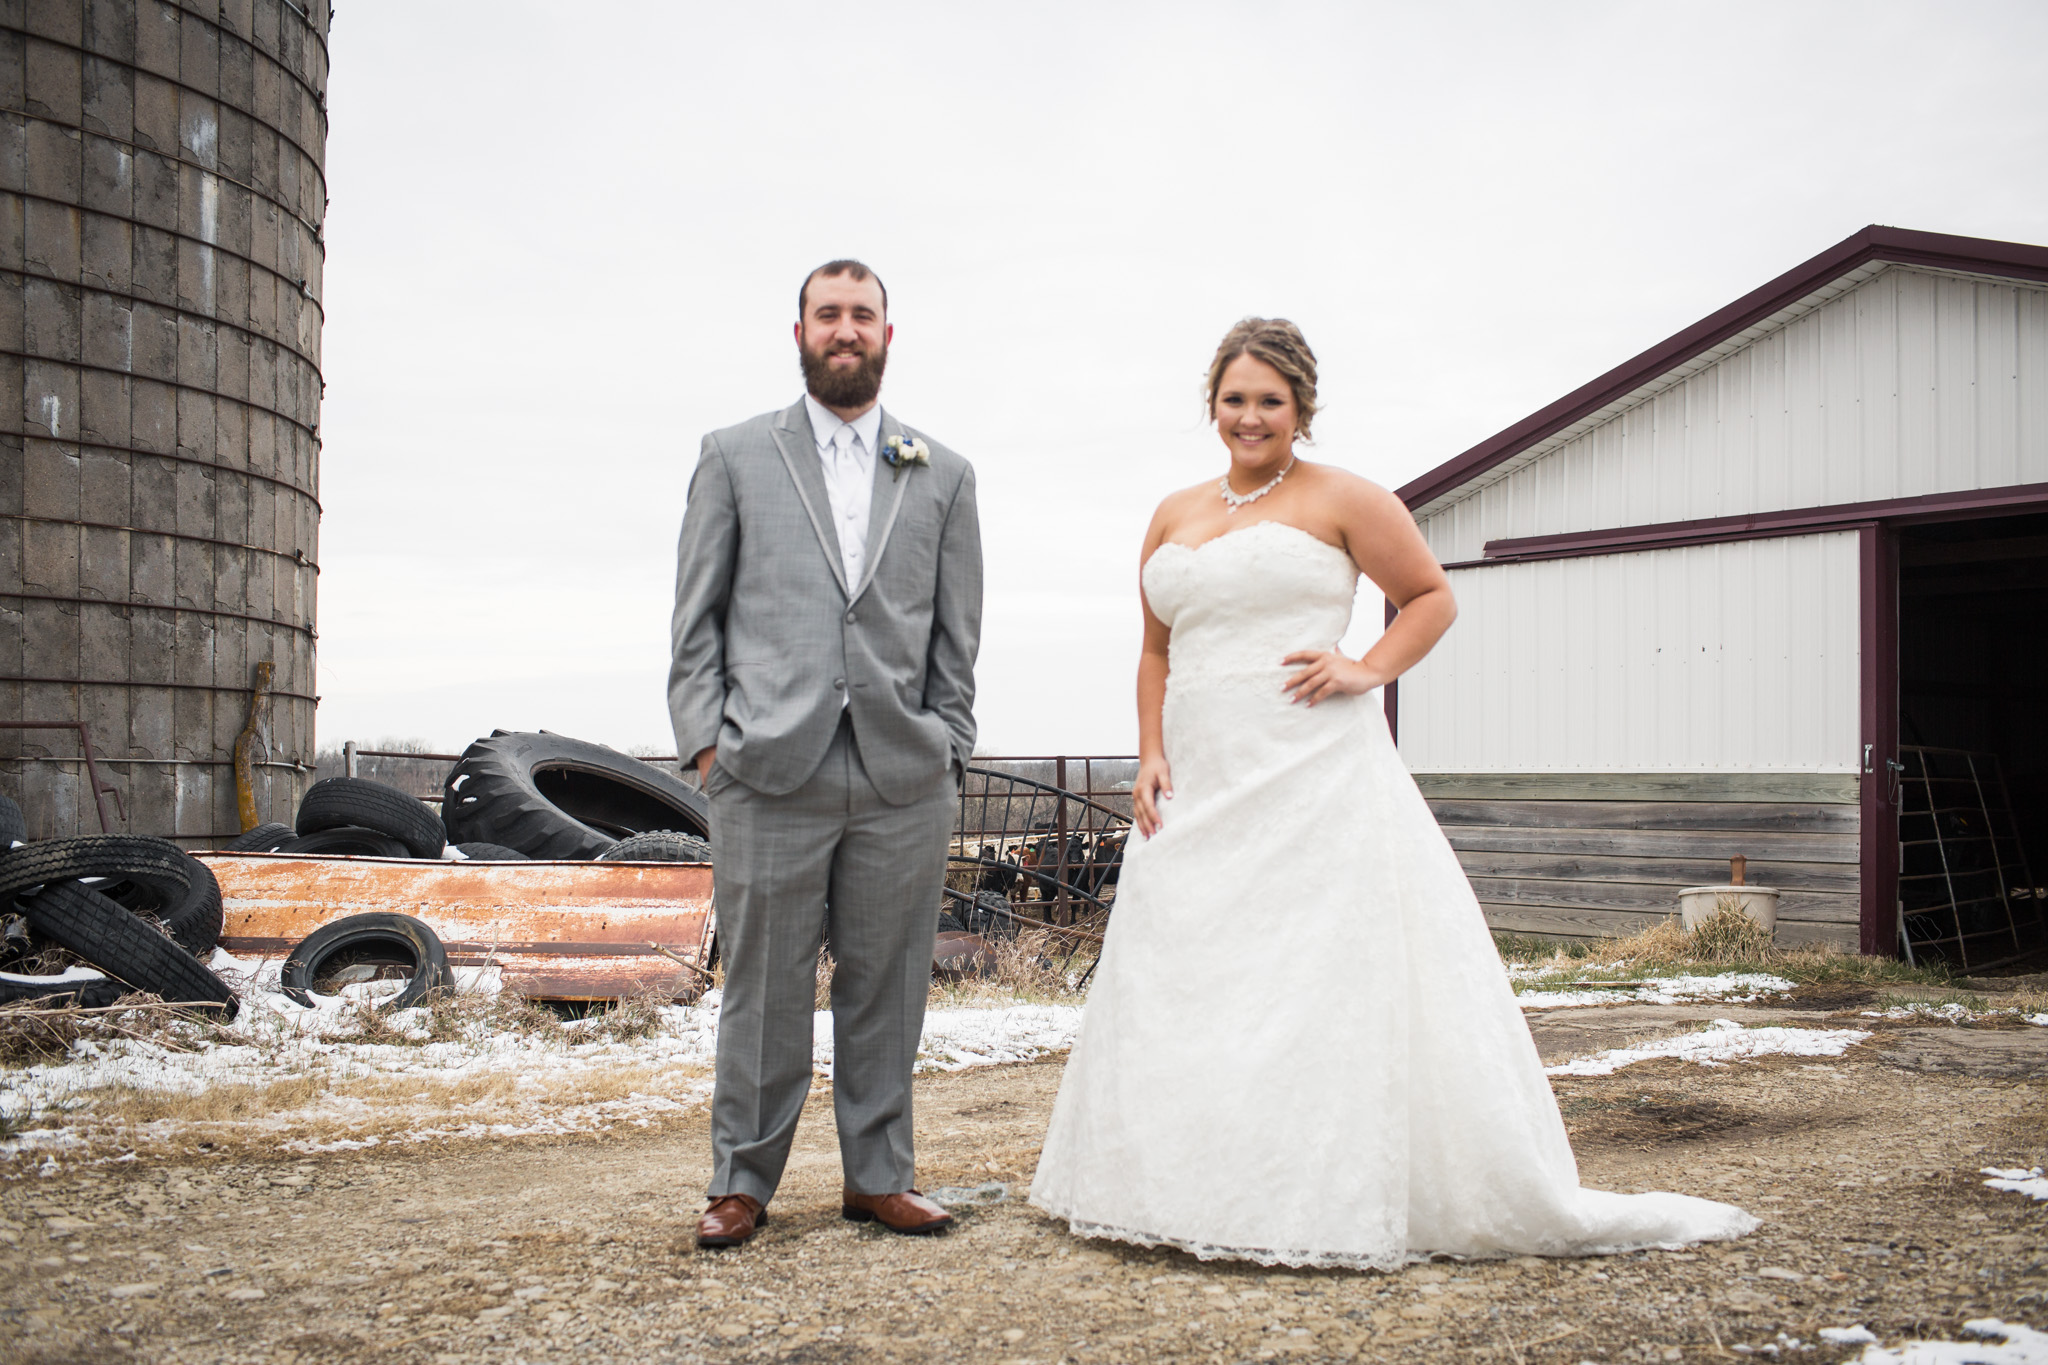 Zibell Spring Wedding, Bride and Groom, Powerful, Connected, Exploration, Laura Duggleby Photography -104.JPG